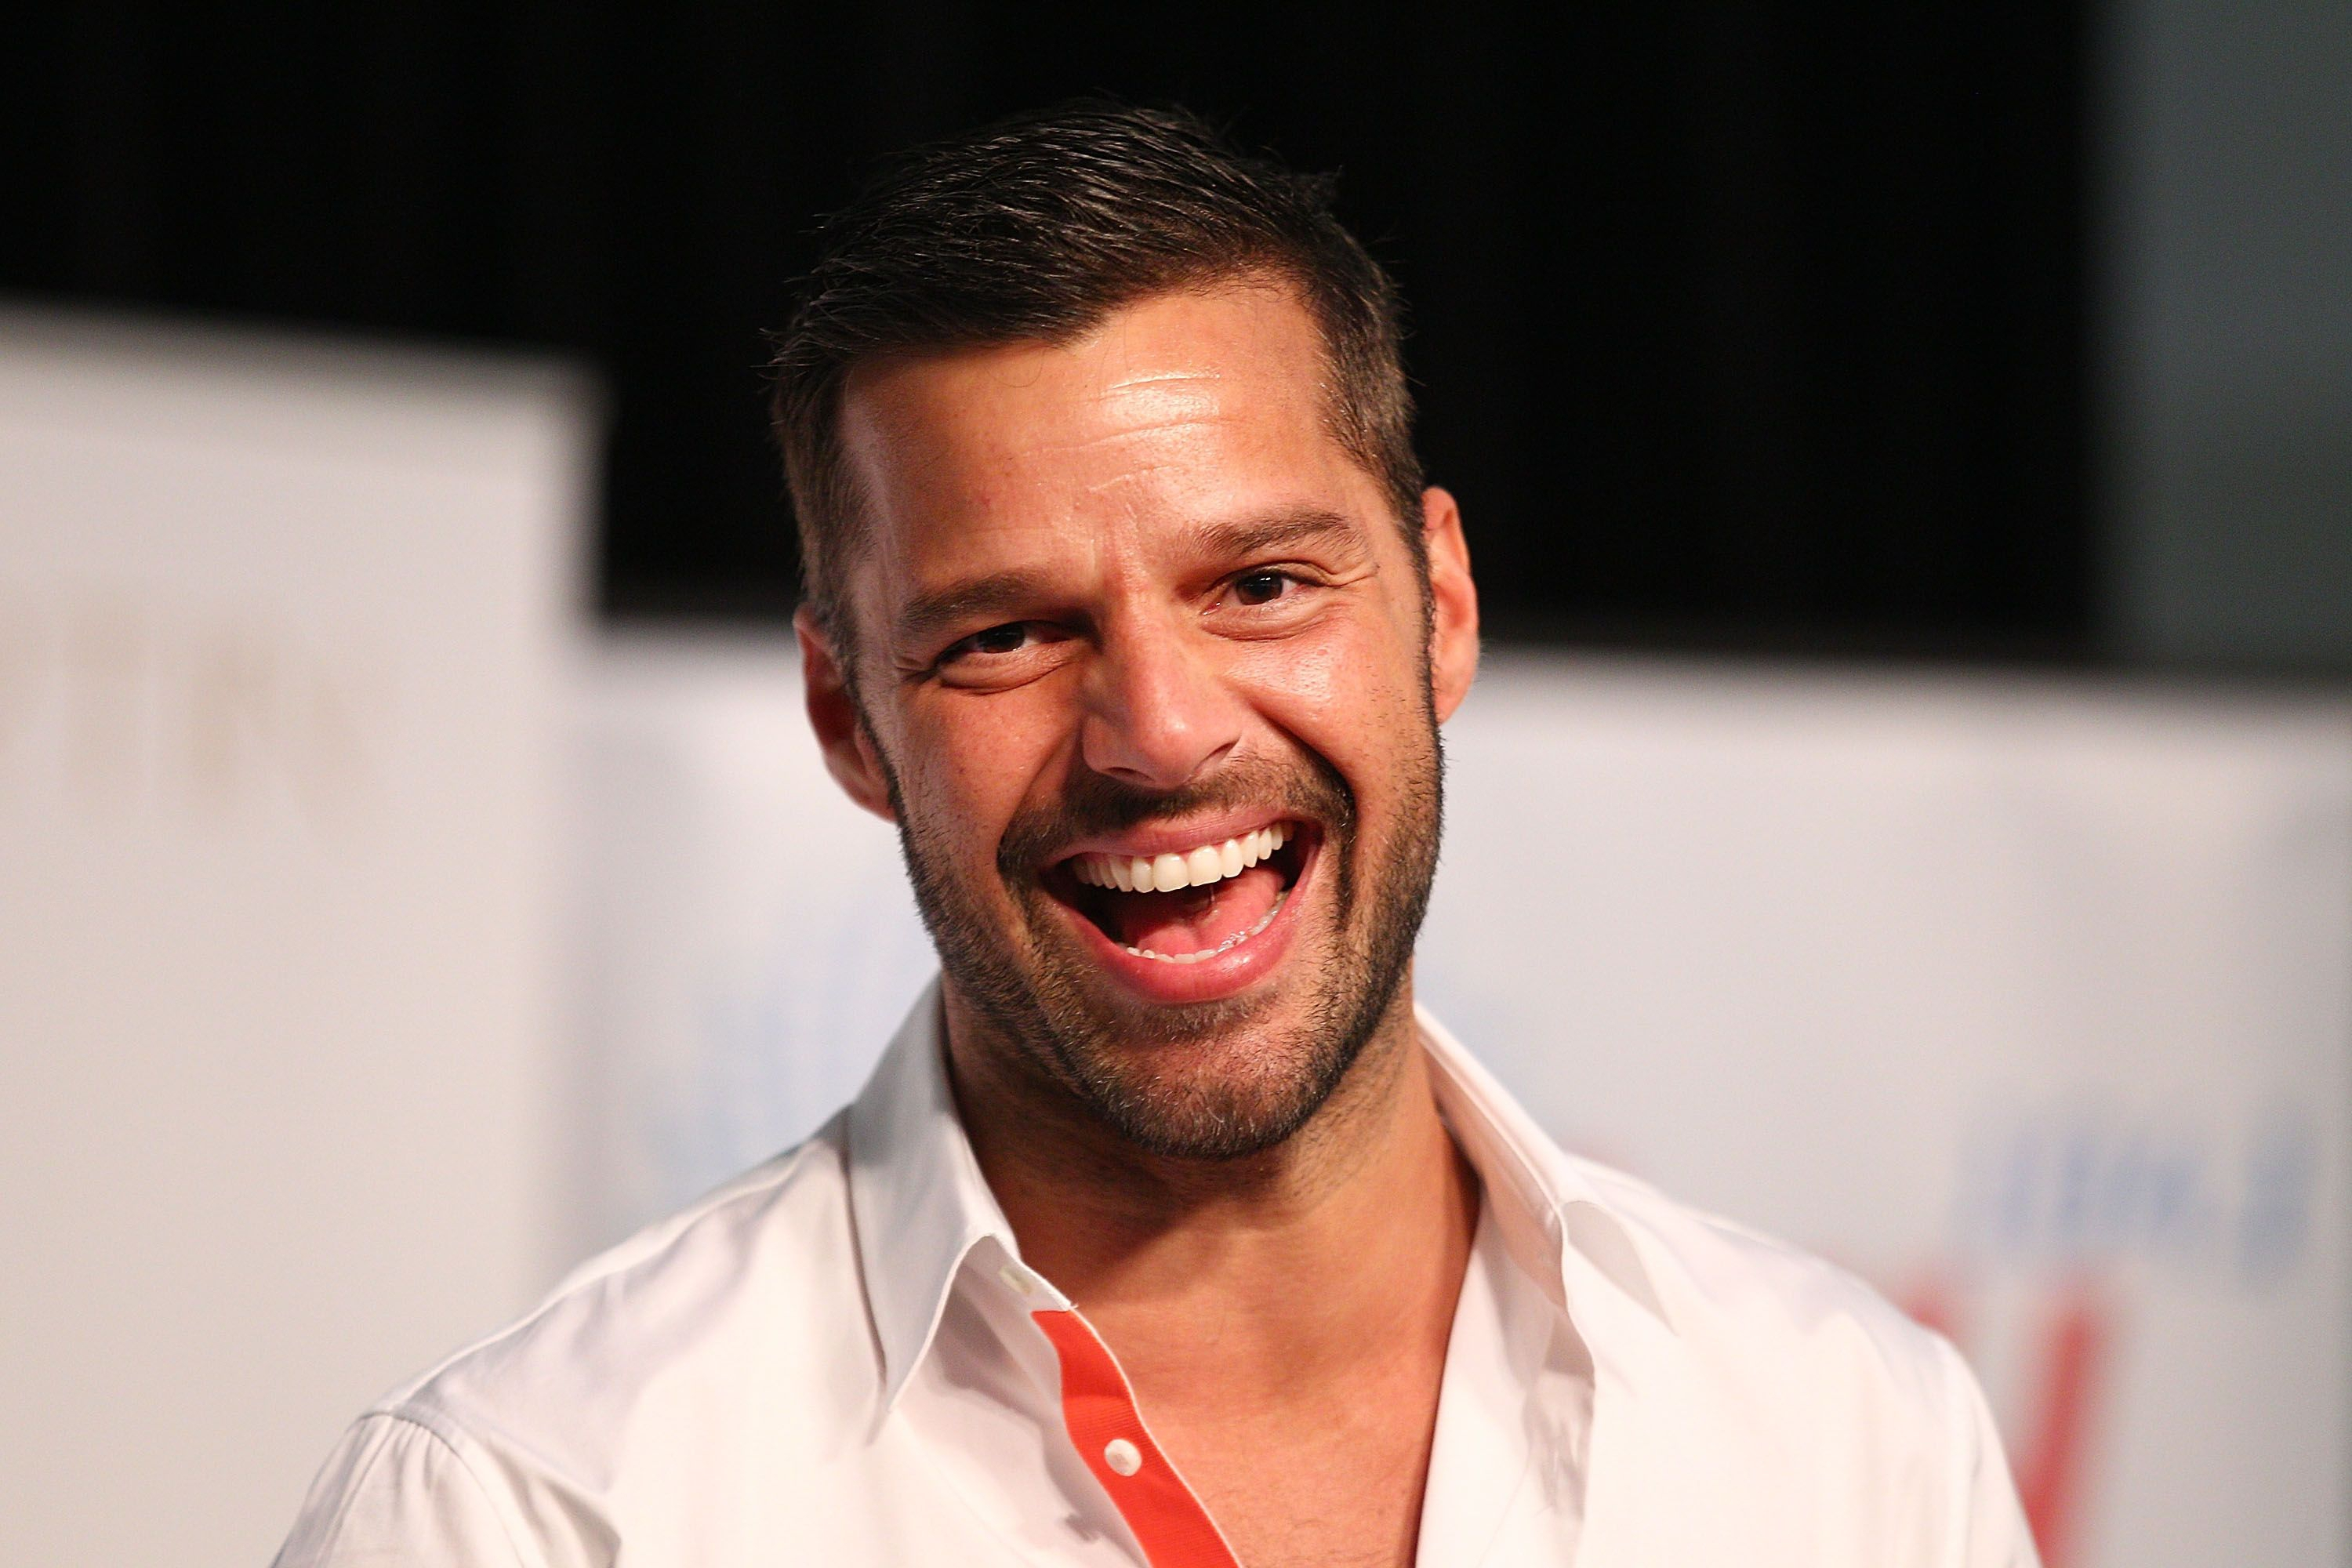 Ricky Martin High Definition Wallpapers